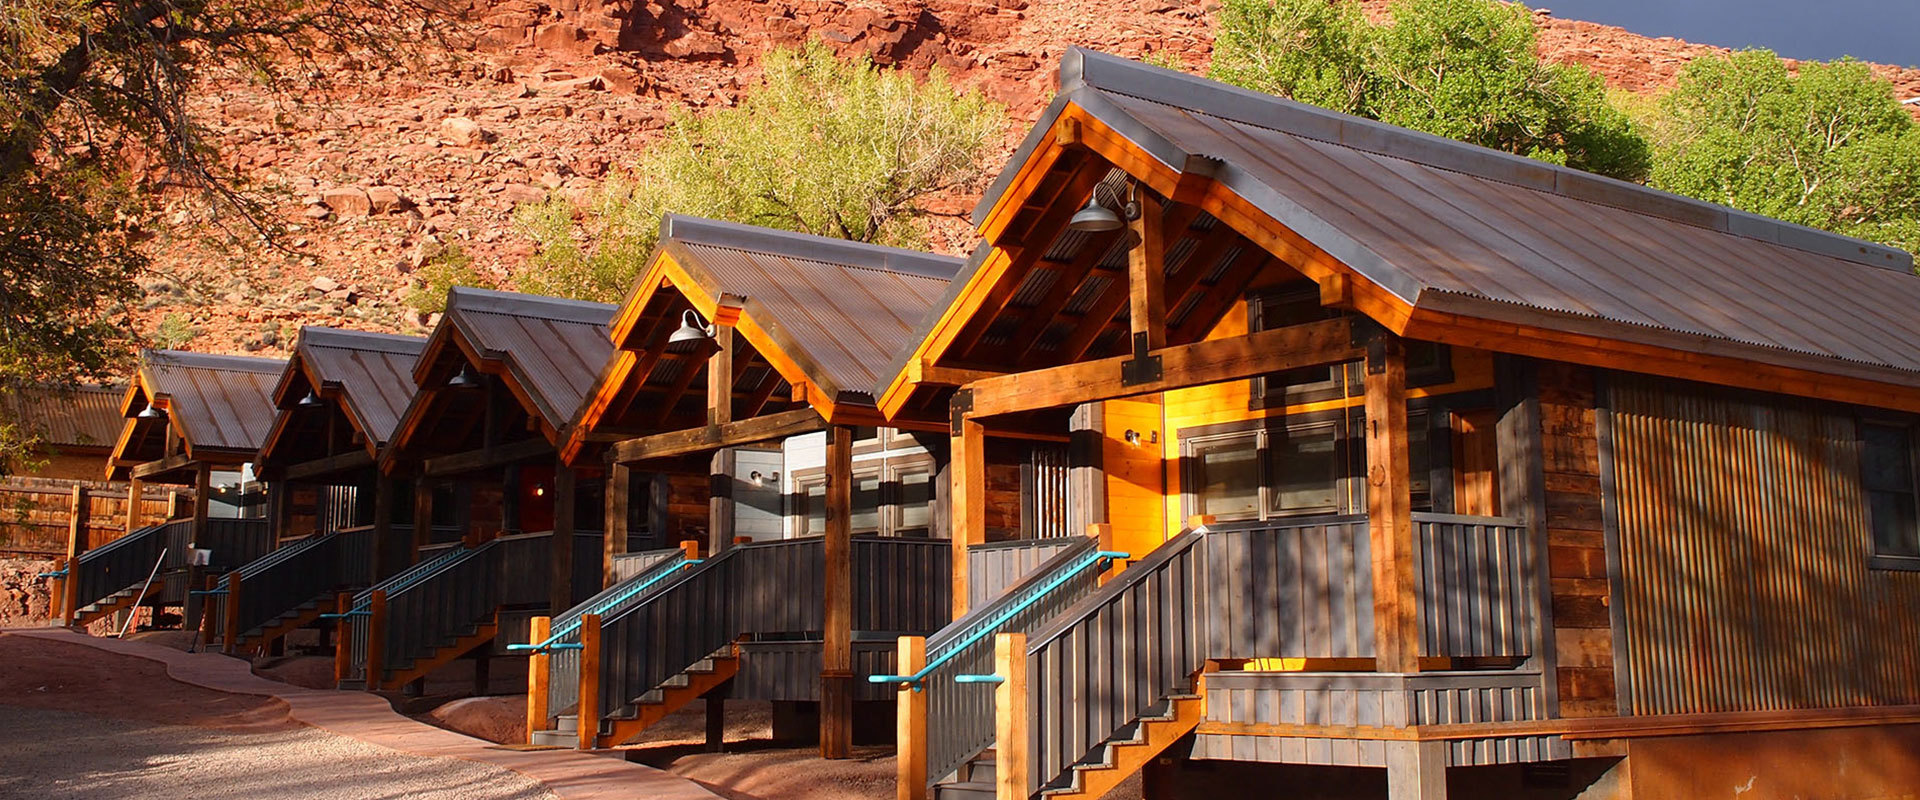 Upward looking view of trees bearing green and yellow leaves towering over the townhomes of Moab Springs Ranch.